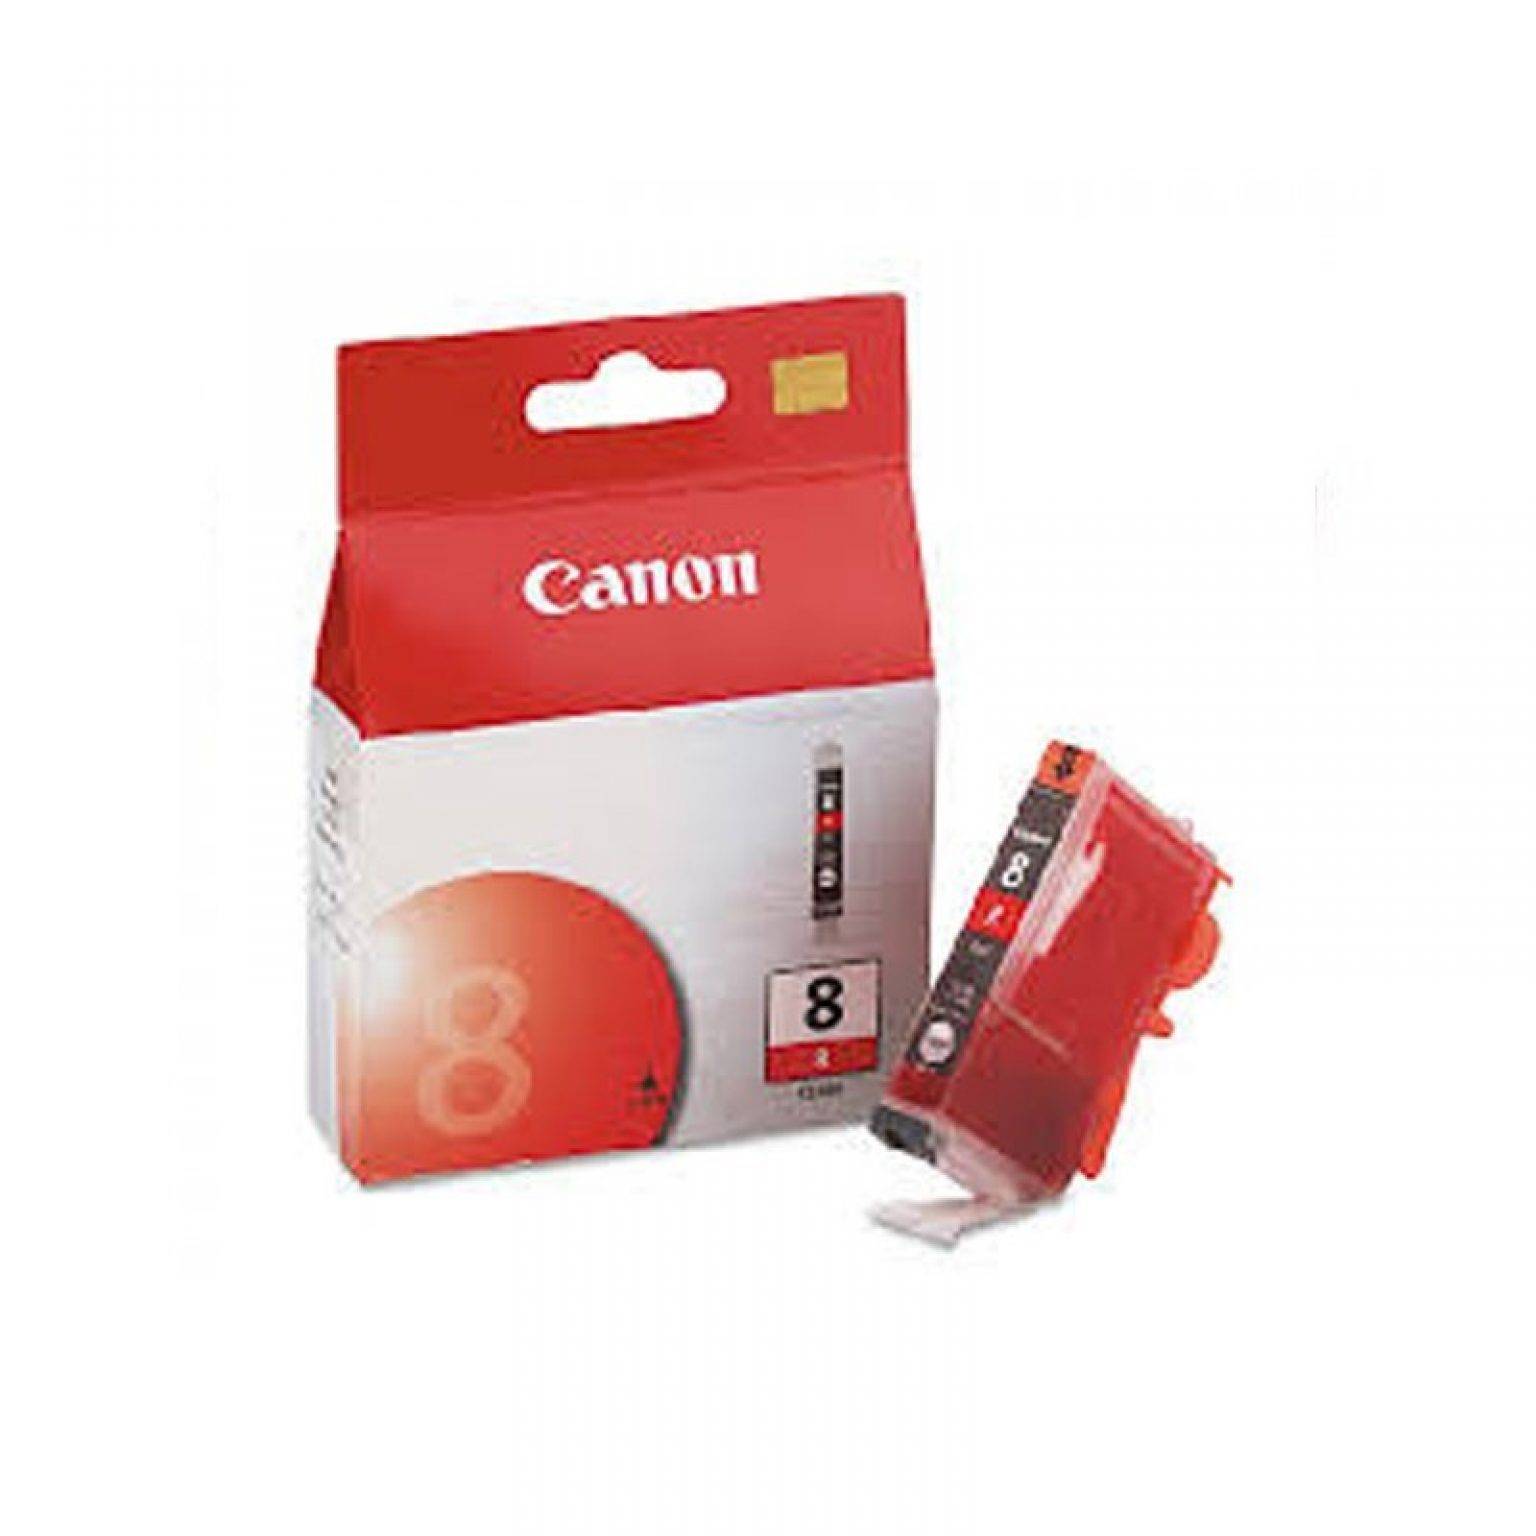 CANON - Ink Cartridges CLI 8 Red [CLI8R]